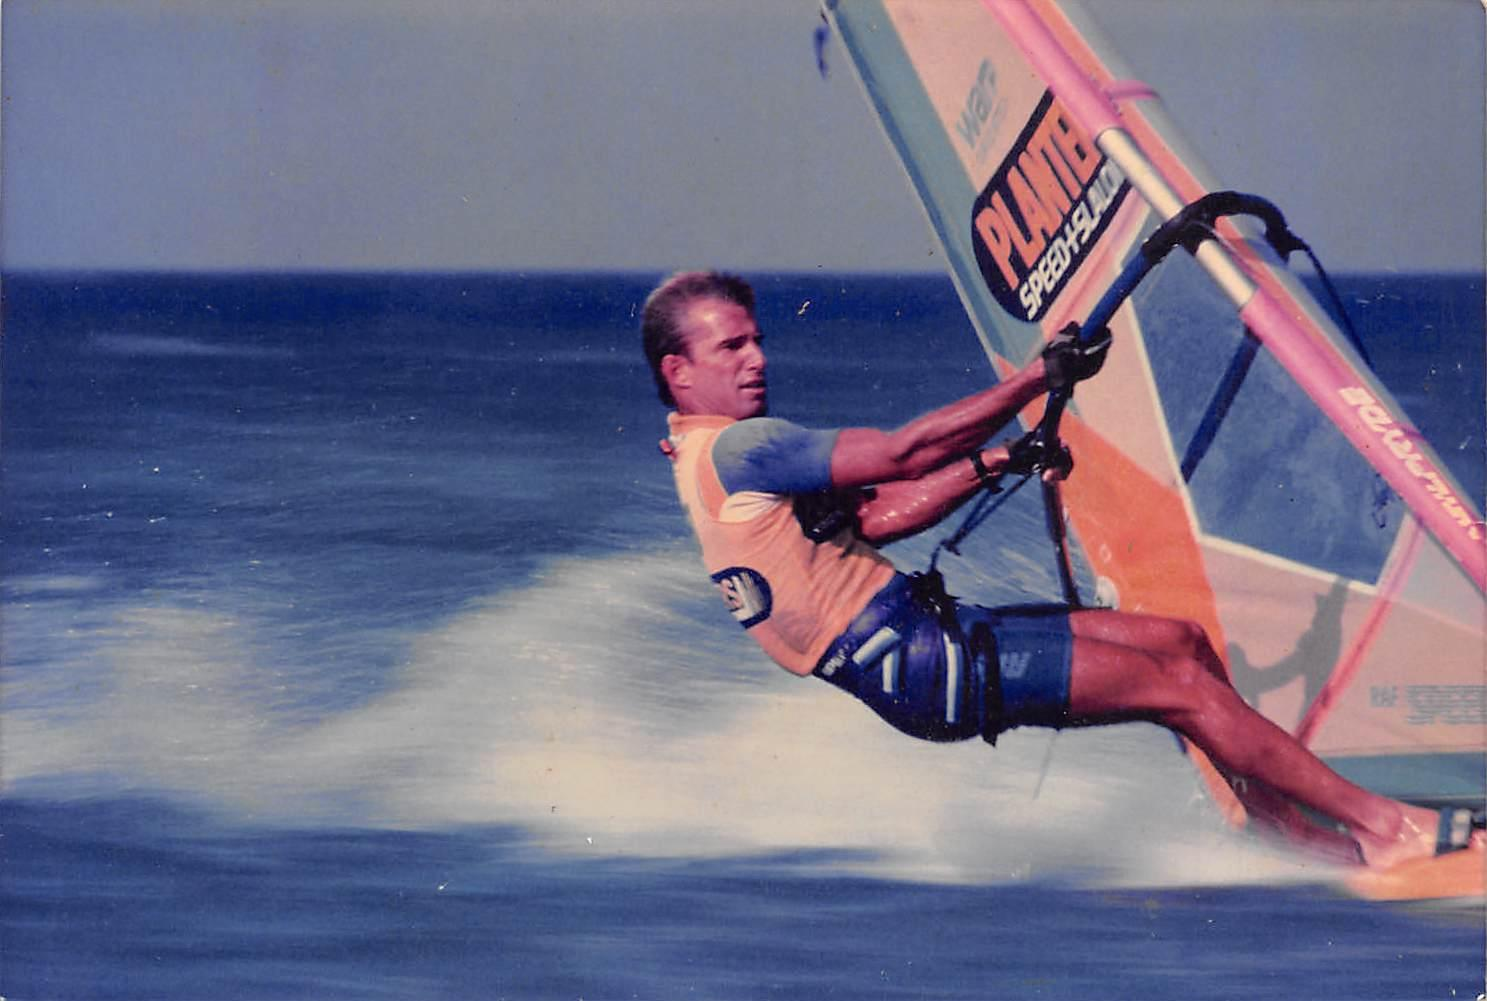 - In the summer of '82 my friend Pierre Bouret gave me a windsurfing lesson in Hanalei Bay and that was it- my life changed. We windsurfed every day that summer. At the time I was the only shaper on Kauai who actually windsurfed and because of that I immediately had 4 orders for windsurfers before even having shaped one. The friends I was shaping boards for also needed the sail and rigging so we pooled our money and I went to Oahu and opened a dealership with Hugh England at Windsurfing Hawaii.Photo: Charlie Cowden | Planters Speed Week, Sotavento, Canary Islands | 1987 | By Steve Wilkens